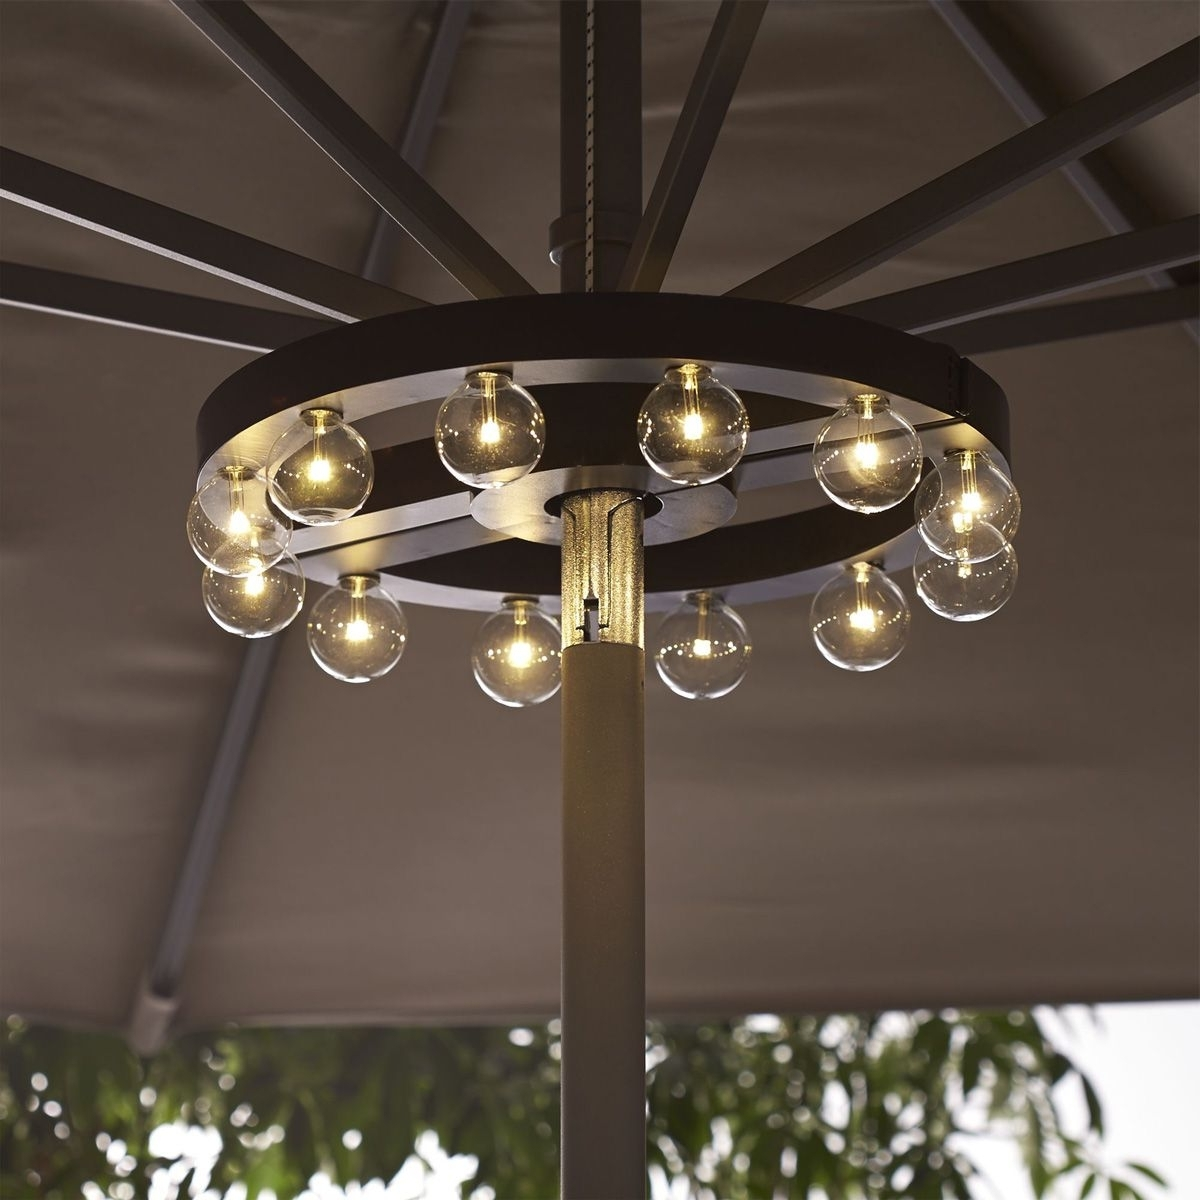 2019 Solar Lights For Patio Umbrellas • Patio Ideas Regarding Solar Patio Umbrellas (View 19 of 20)